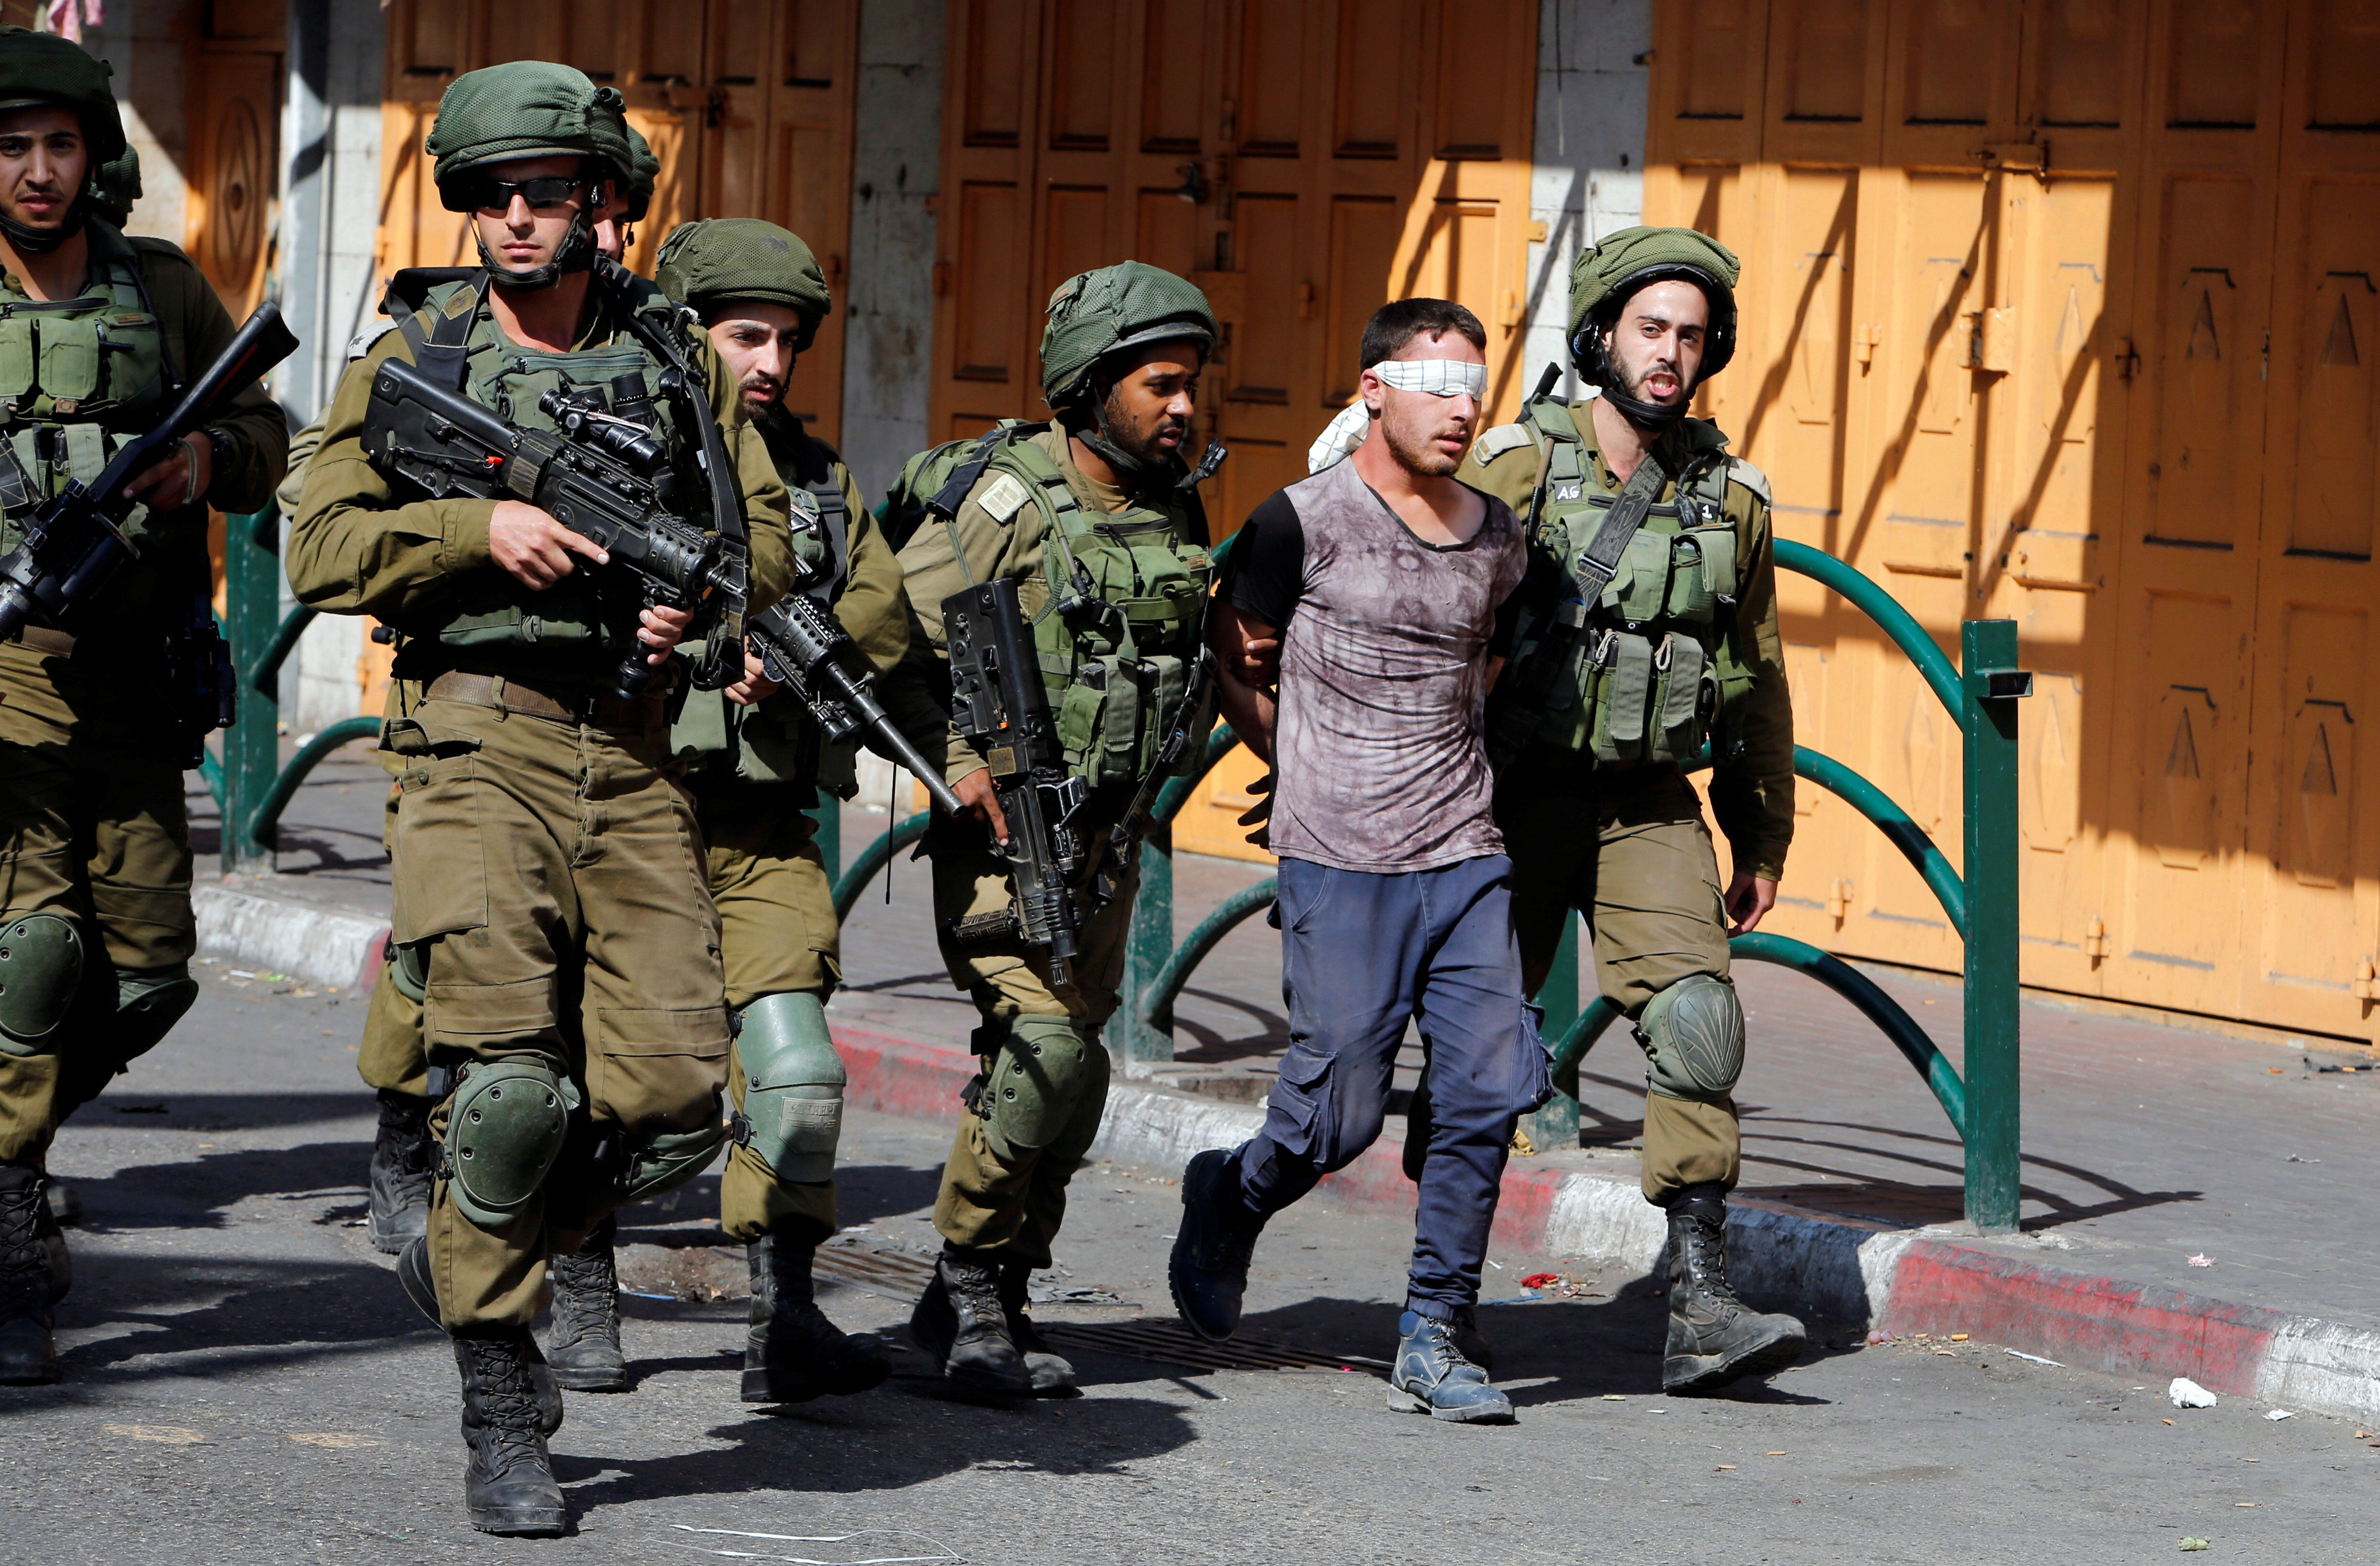 Israeli soldiers detain a Palestinian protester during clashes in the West Bank city of Hebron, September 29, 2017. REUTERS/Mussa Qawasma